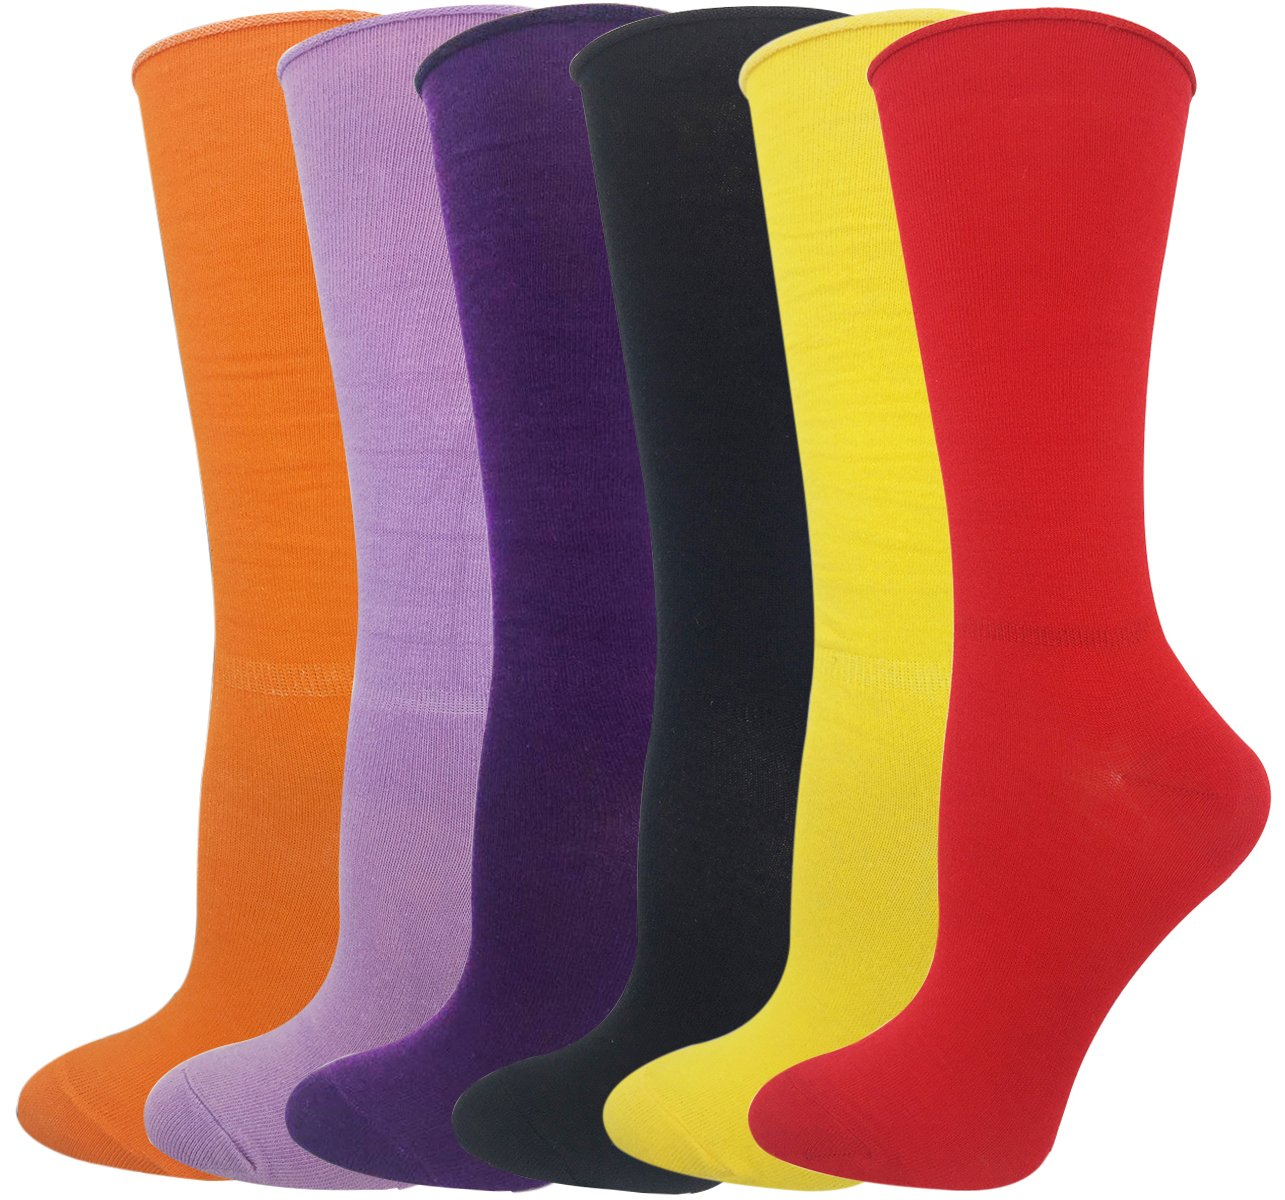 Cityelf Women's Classic Roll Top Cotton Compression Socks (6 pairs, mix) by Cityelf (Image #1)